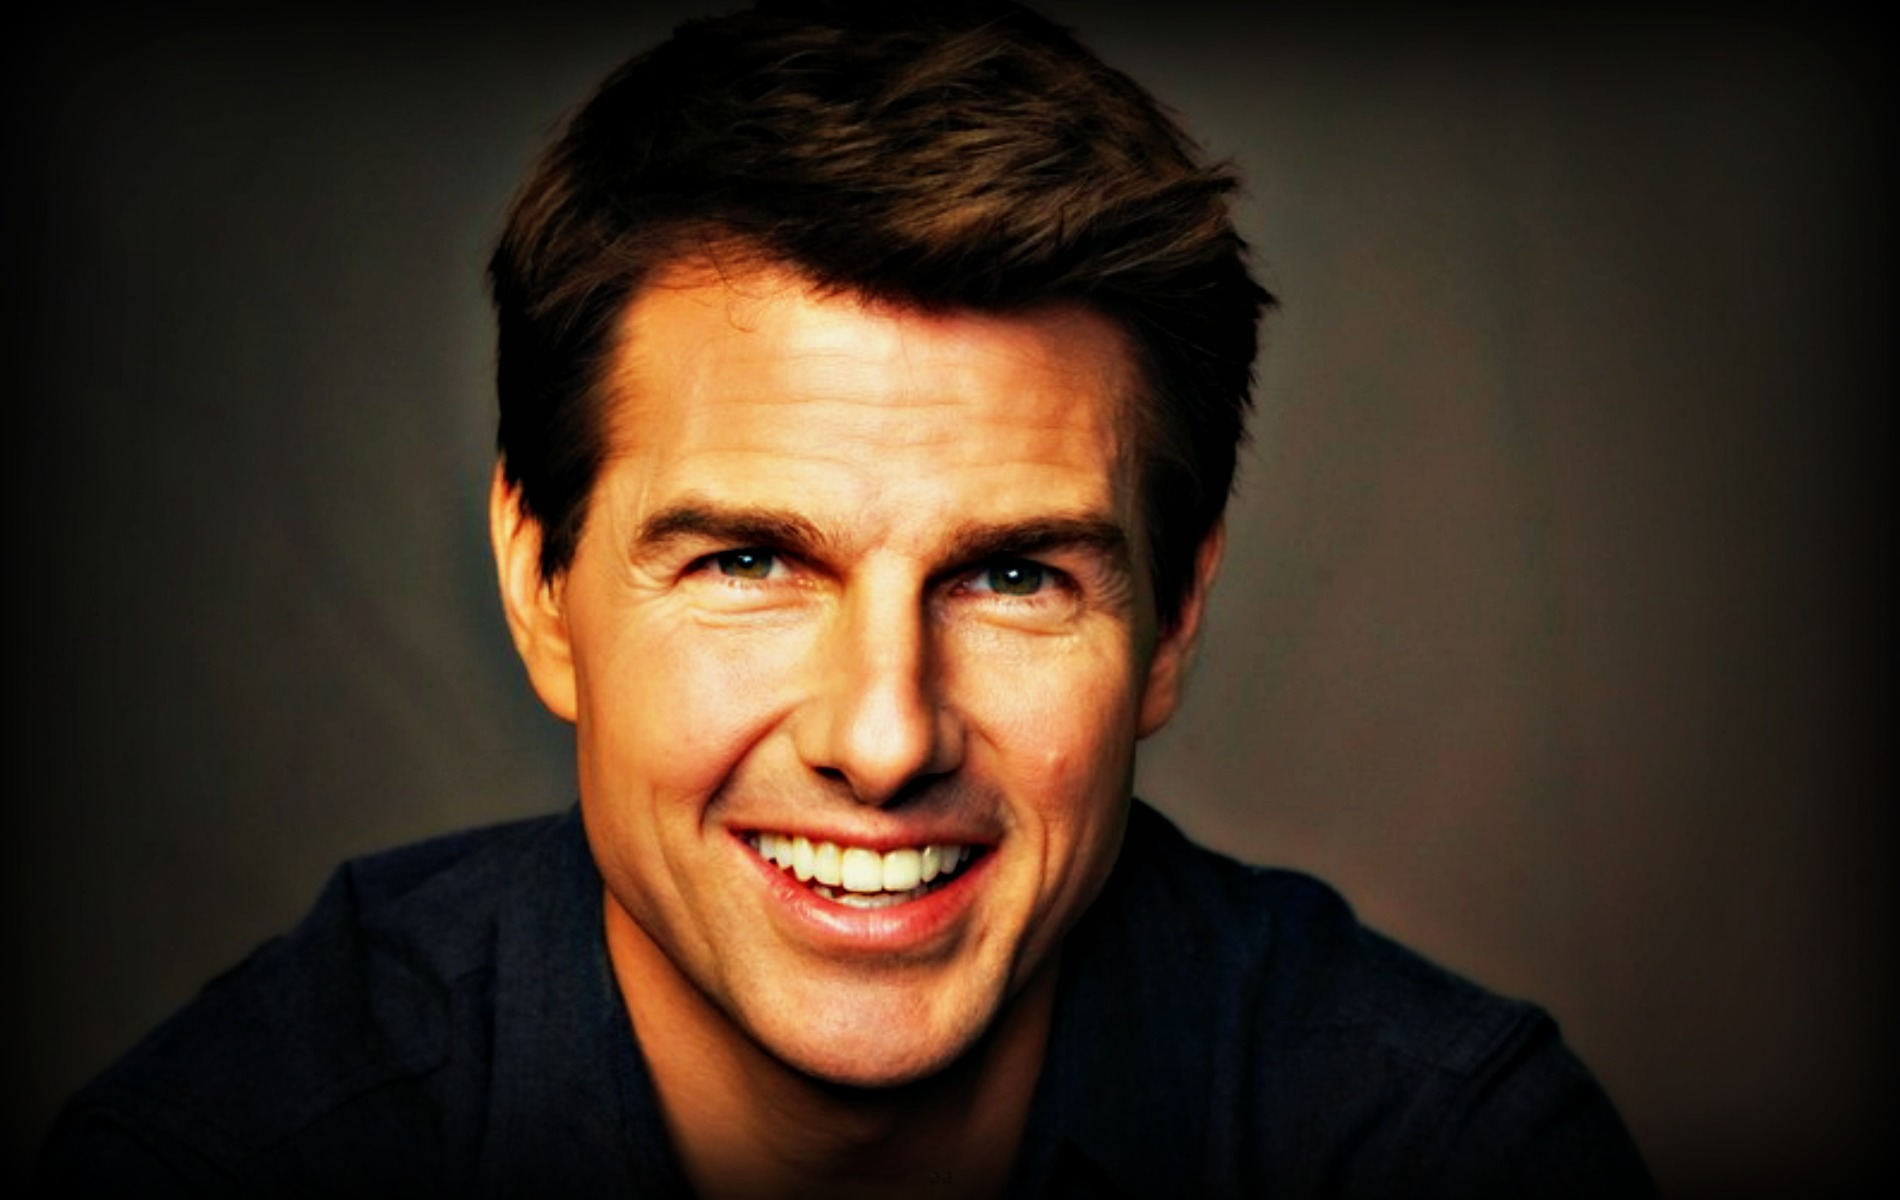 Tom Cruise Wallpapers High Quality Download 1900x1200